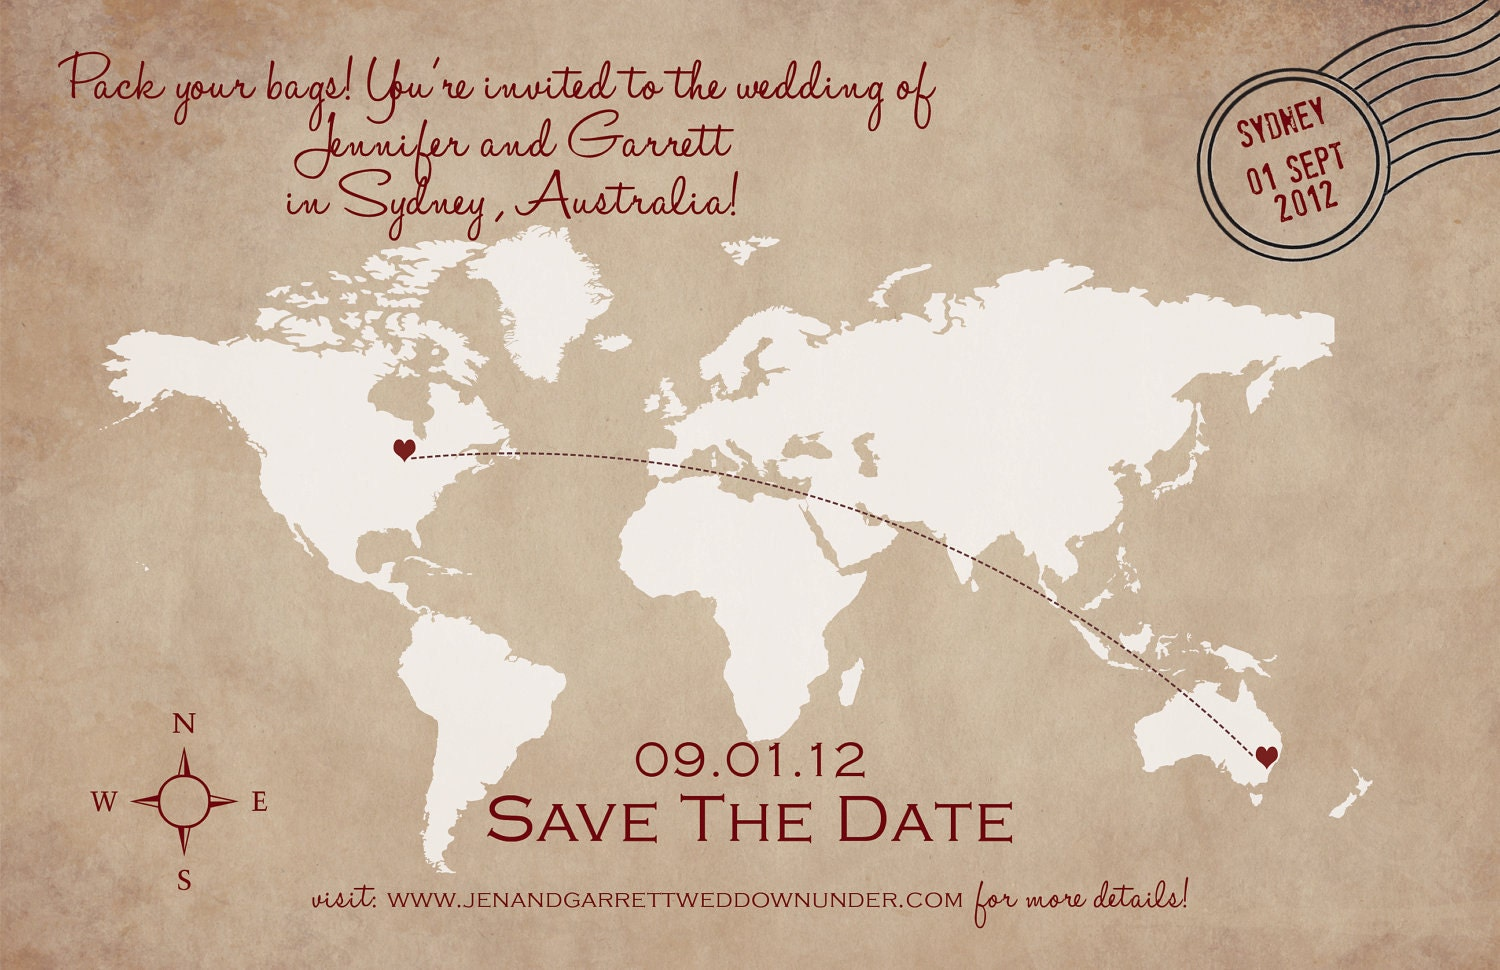 Electronic save the date in Sydney